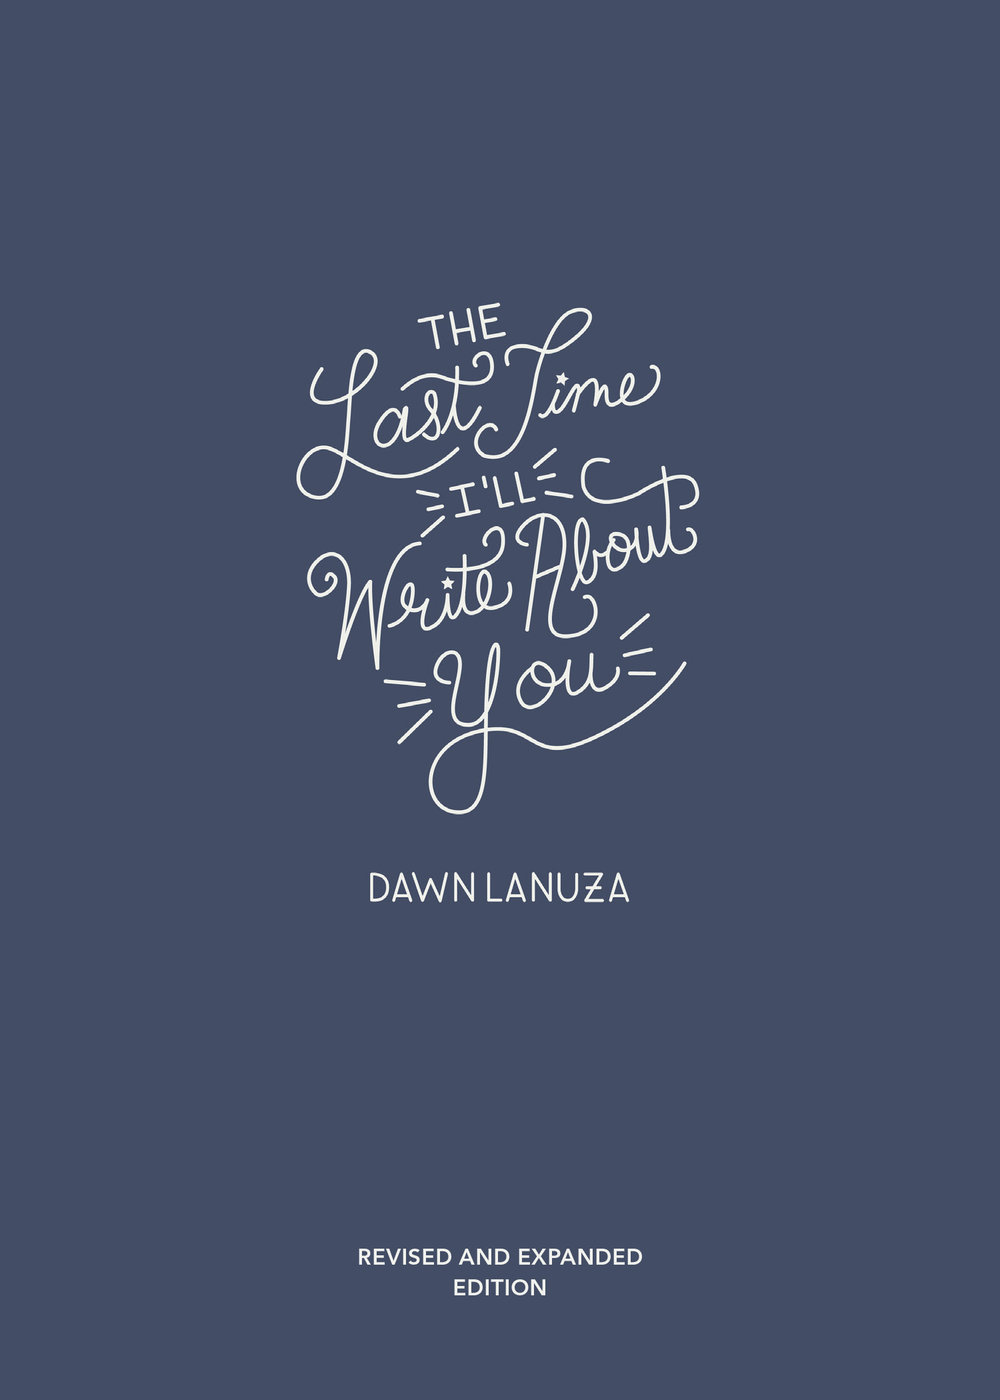 Cover - Last Time I'll Write About You.jpg